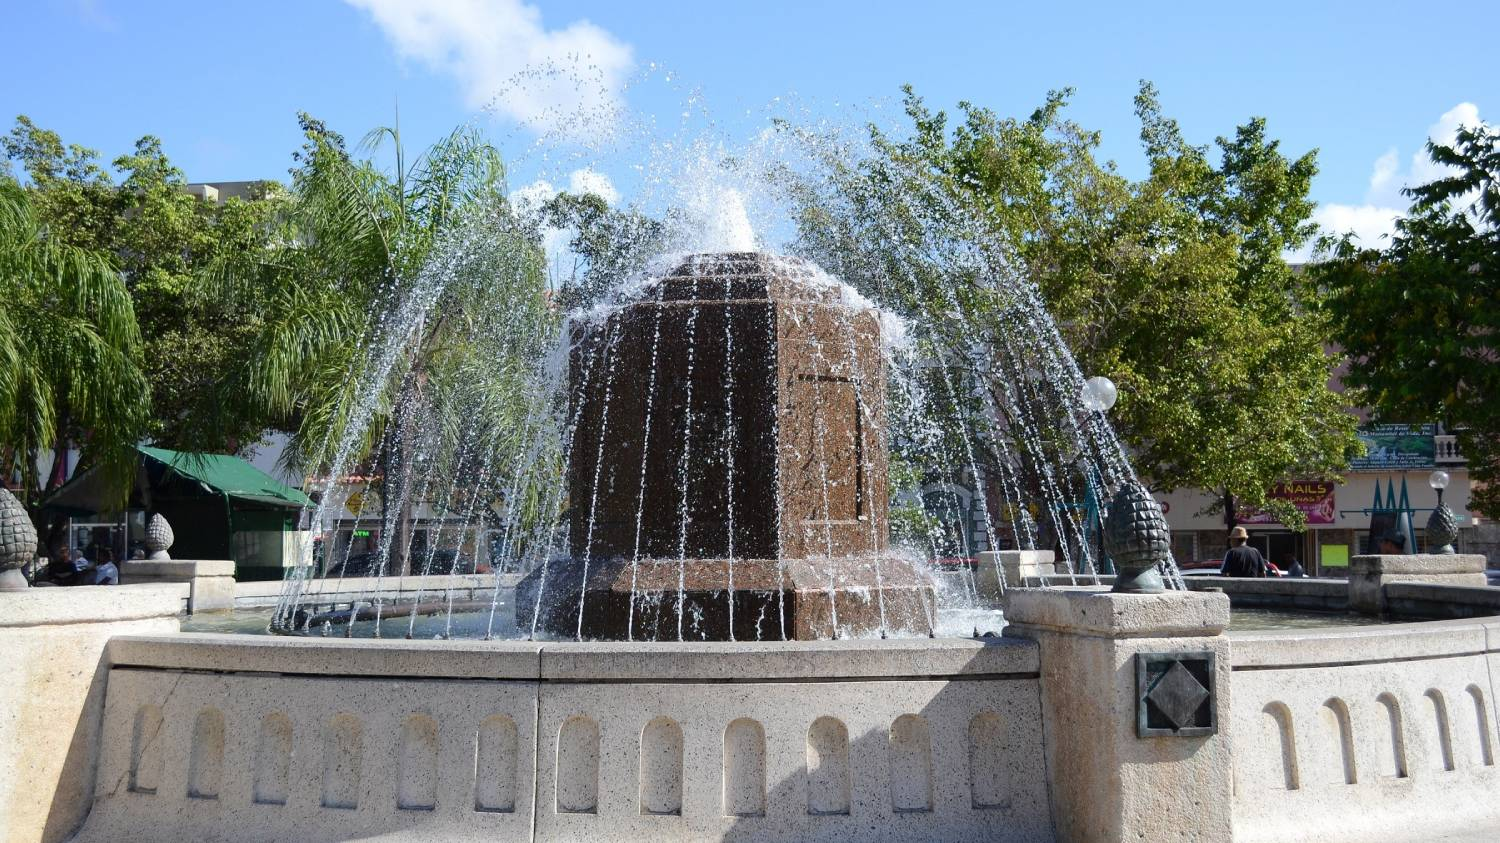 Caguas - The Best Places To Visit In Puerto Rico